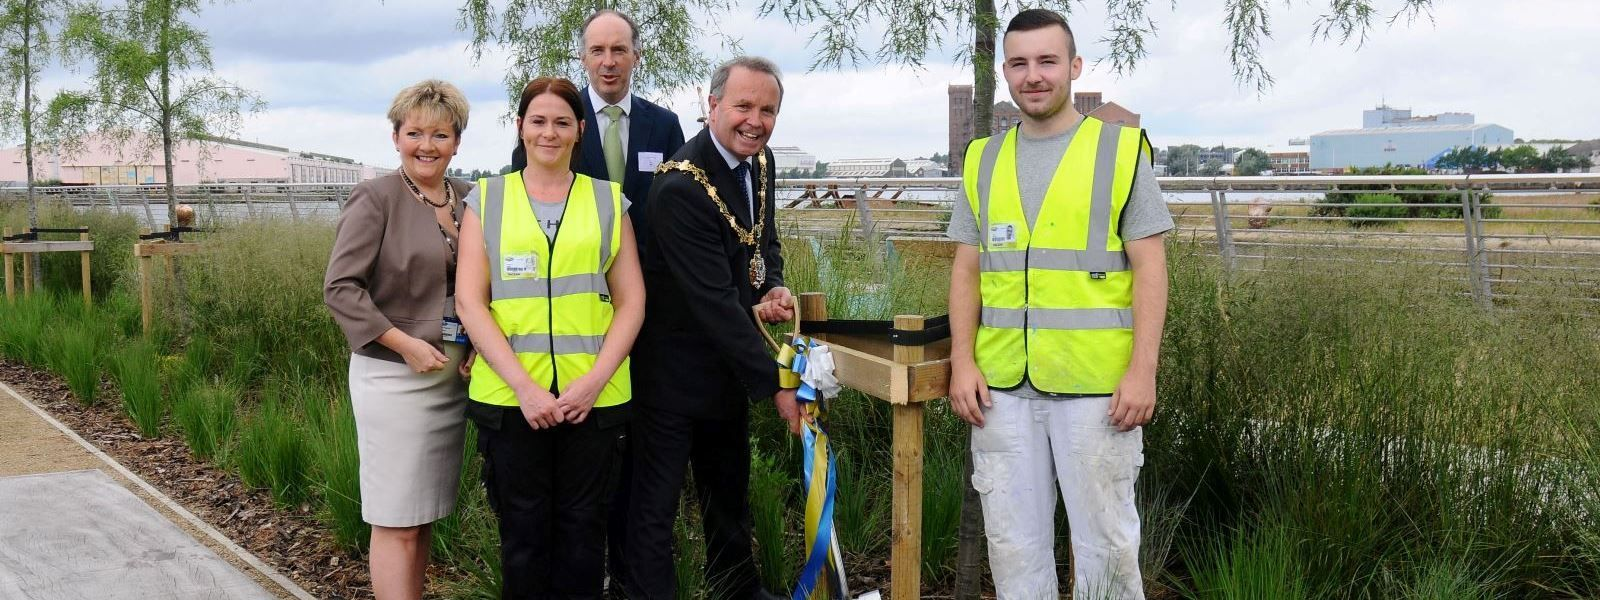 Wirral Met Principal Sue Higginson, James Whittaker of Peel Holdings and the Mayor of Wirral plant a tree at the opening of the Wirral Waters campus